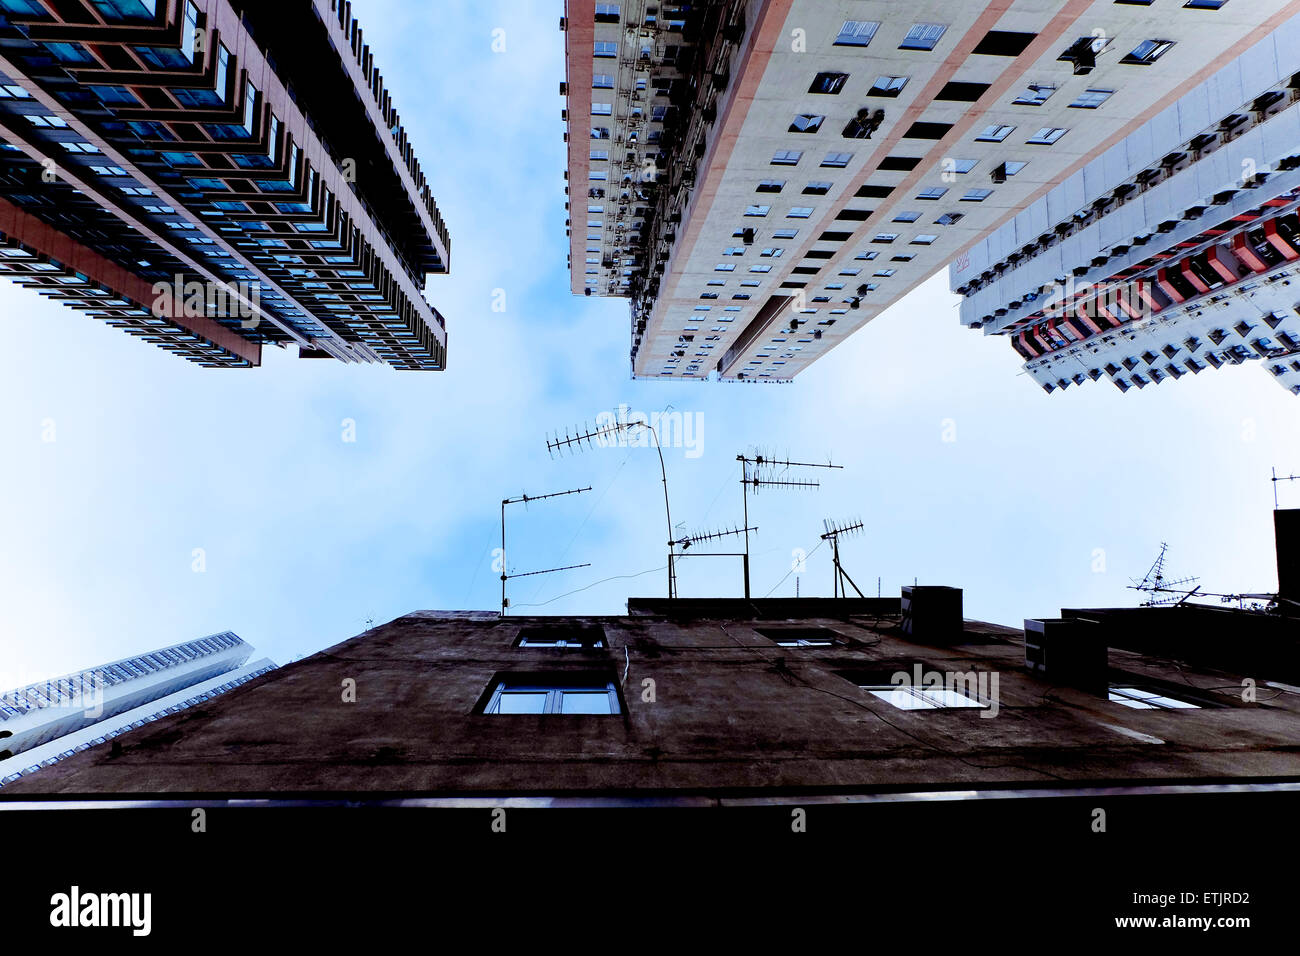 street view in Hong kong - Stock Image